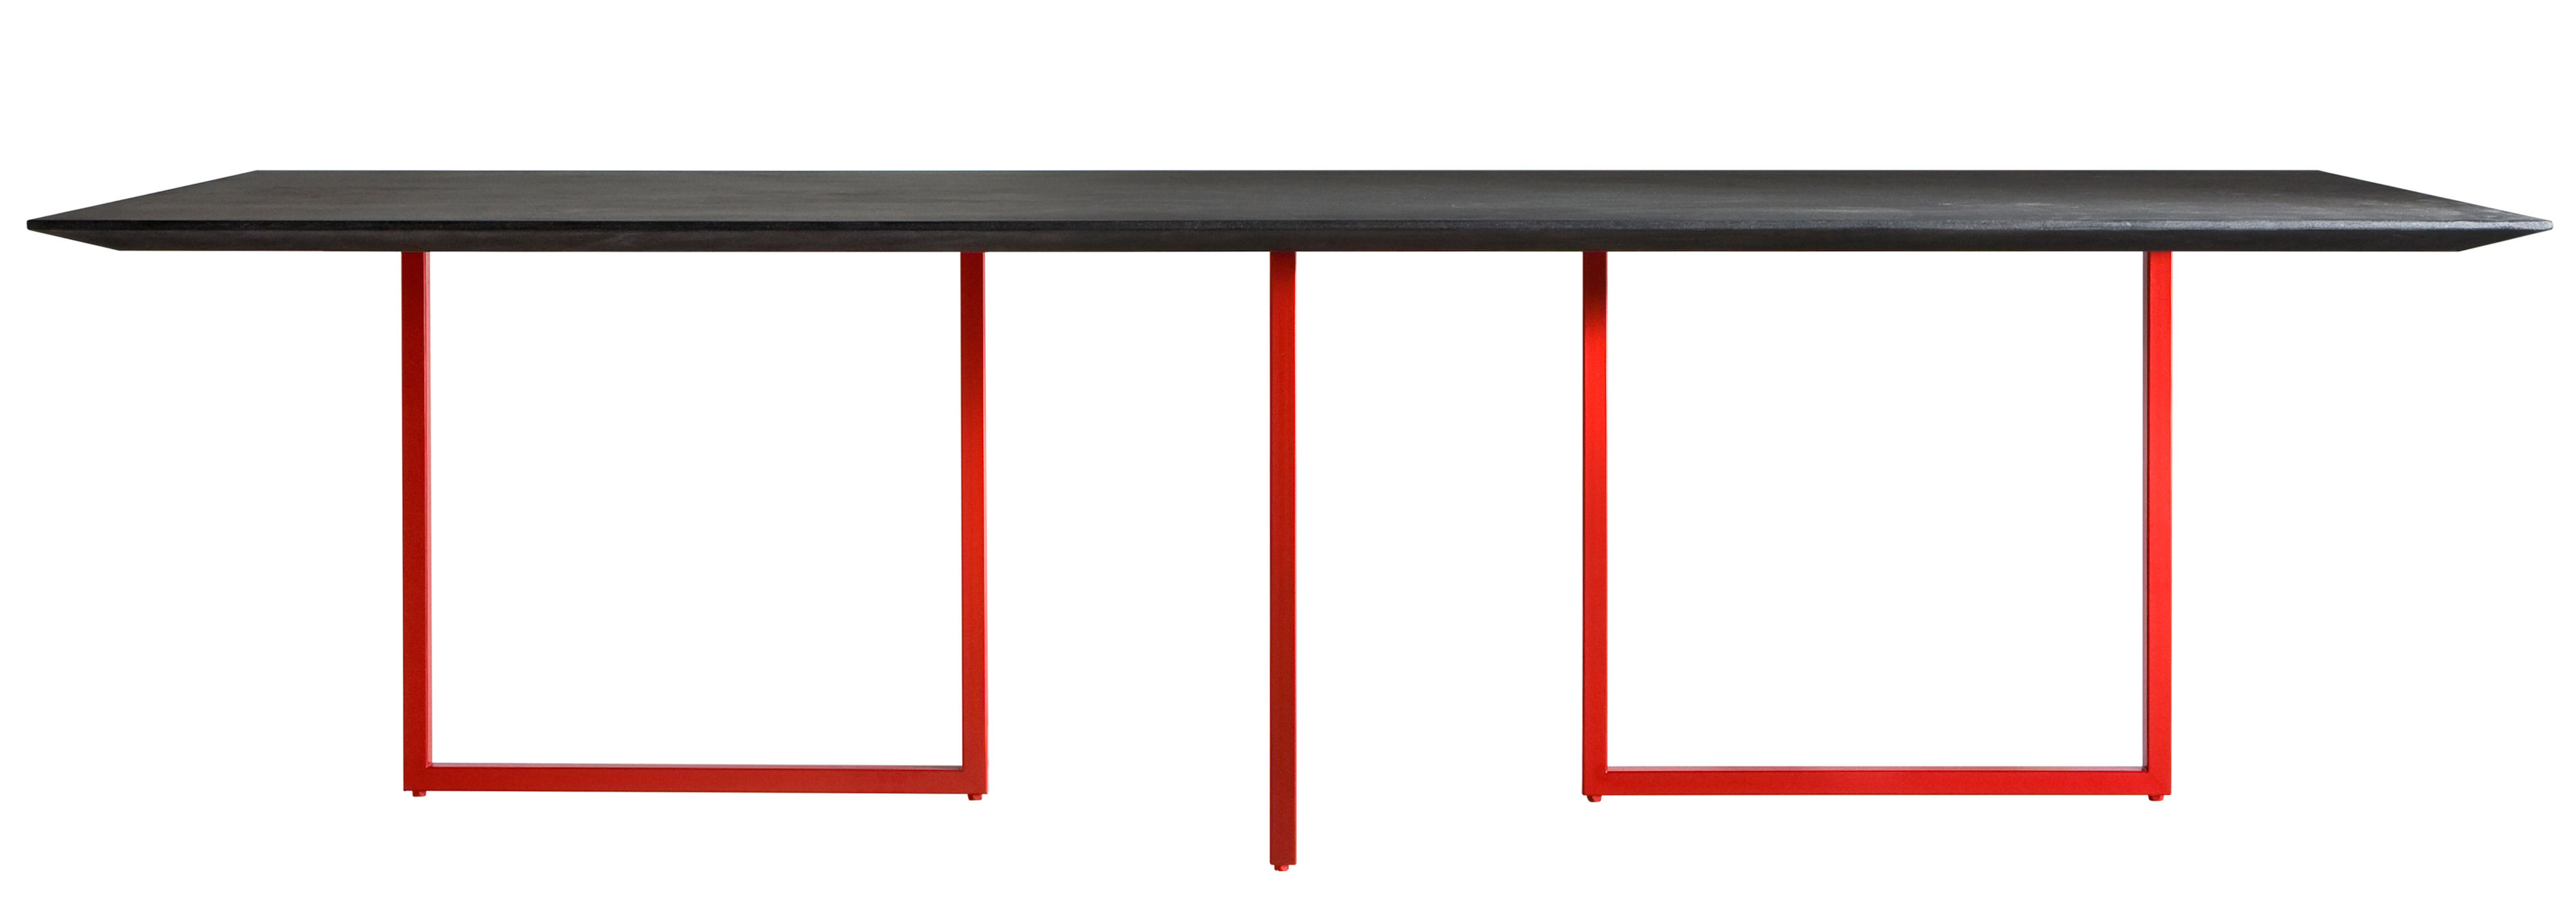 Furniture - Dining Tables - Gazelle Rectangular table by Driade - Anthracite top / Red leg - concrete, Laminate, MDF, Steel